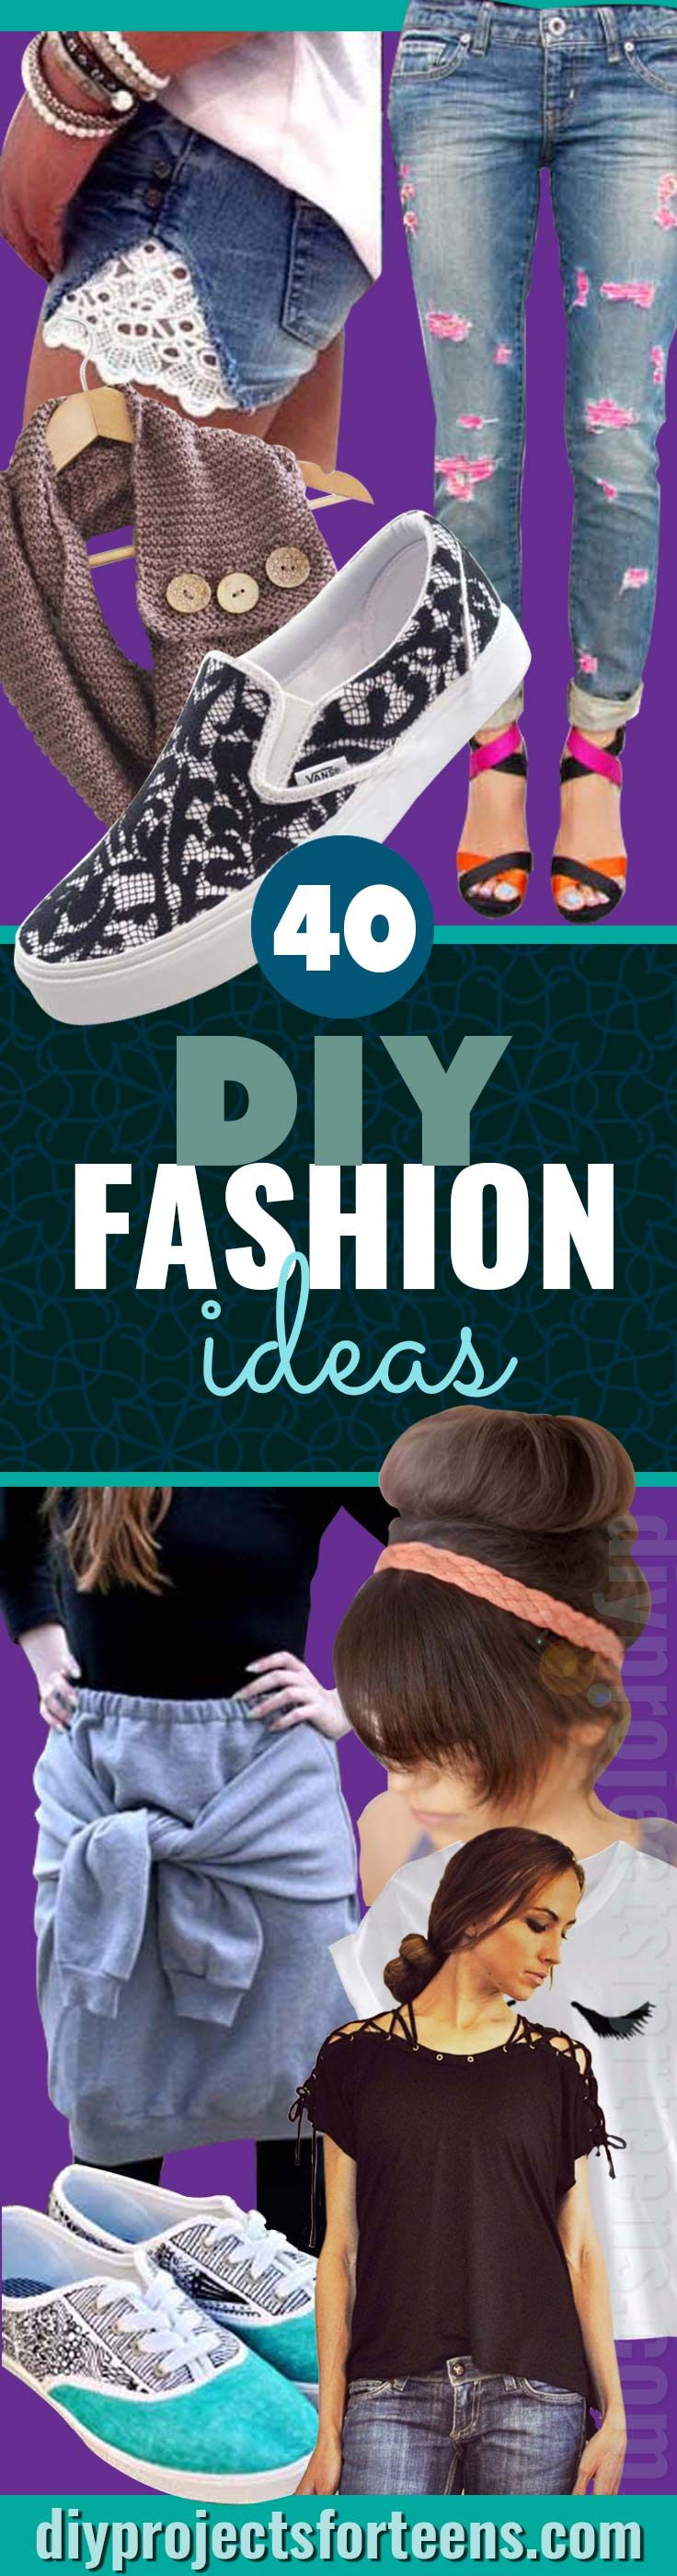 DIY Projects For Teens - Cool Homemade Clothes Tutorials for Fun Things To Wear. Jewelry Crafts and Fashion - Make T Shirts, Skirts, Shoes, Shorts, Jeans